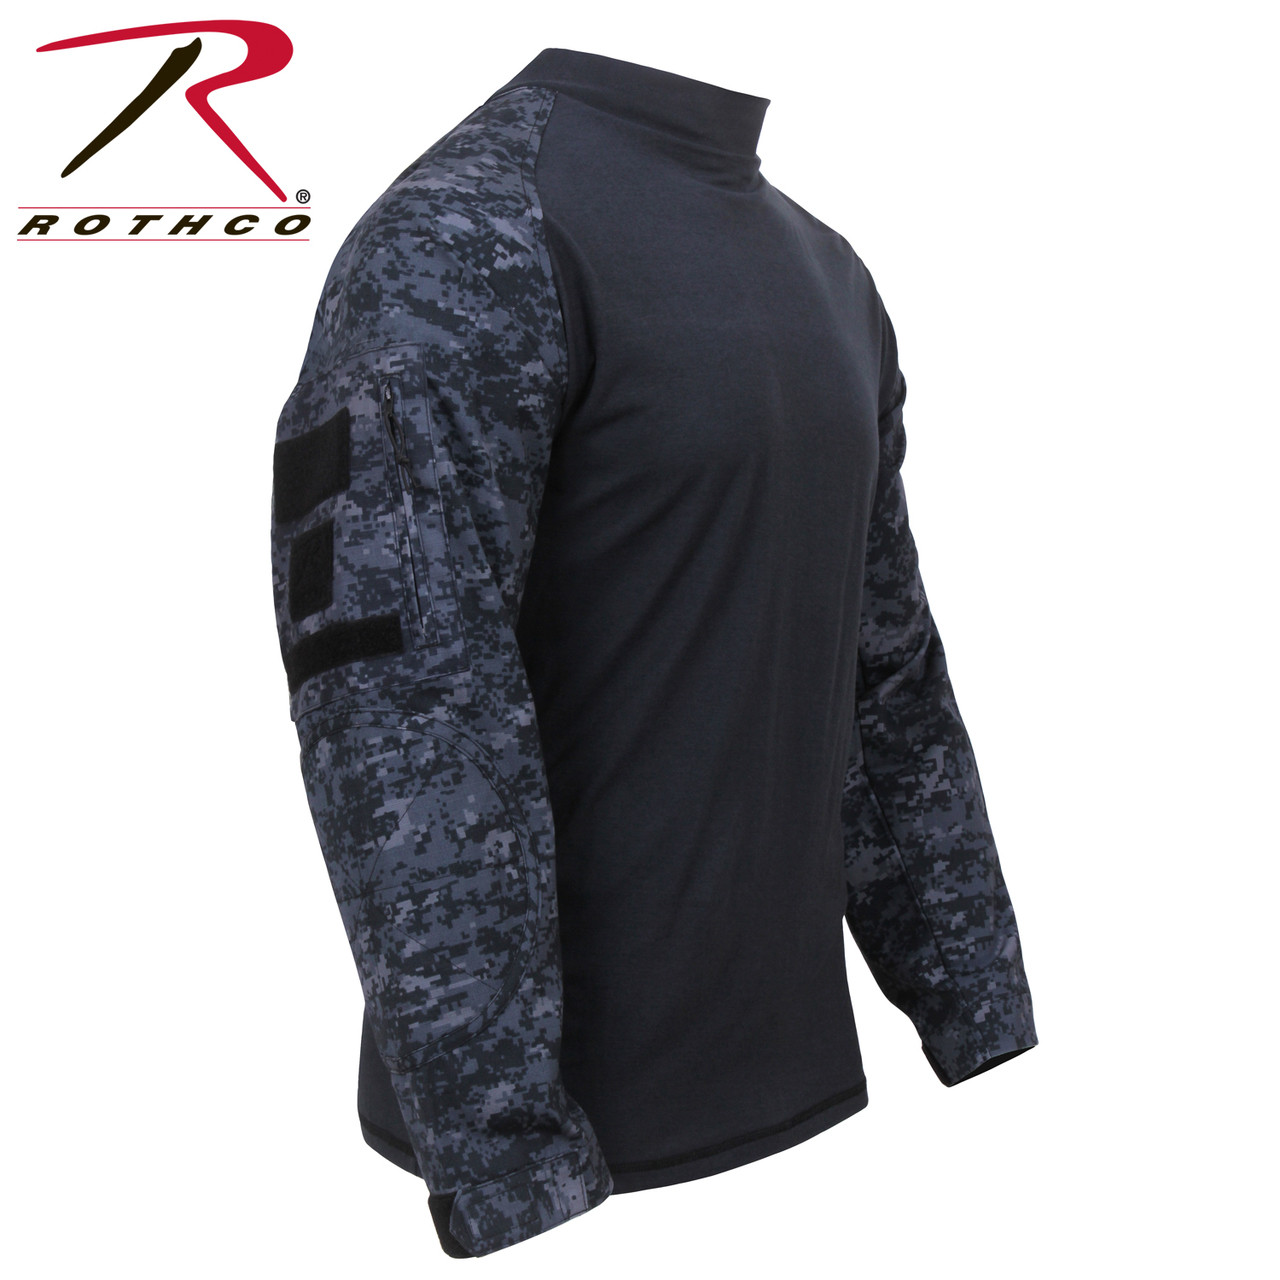 5e0678b1 Rothco Military FR NYCO Combat Shirt - Midnight Digital Camo - Hero Outdoors